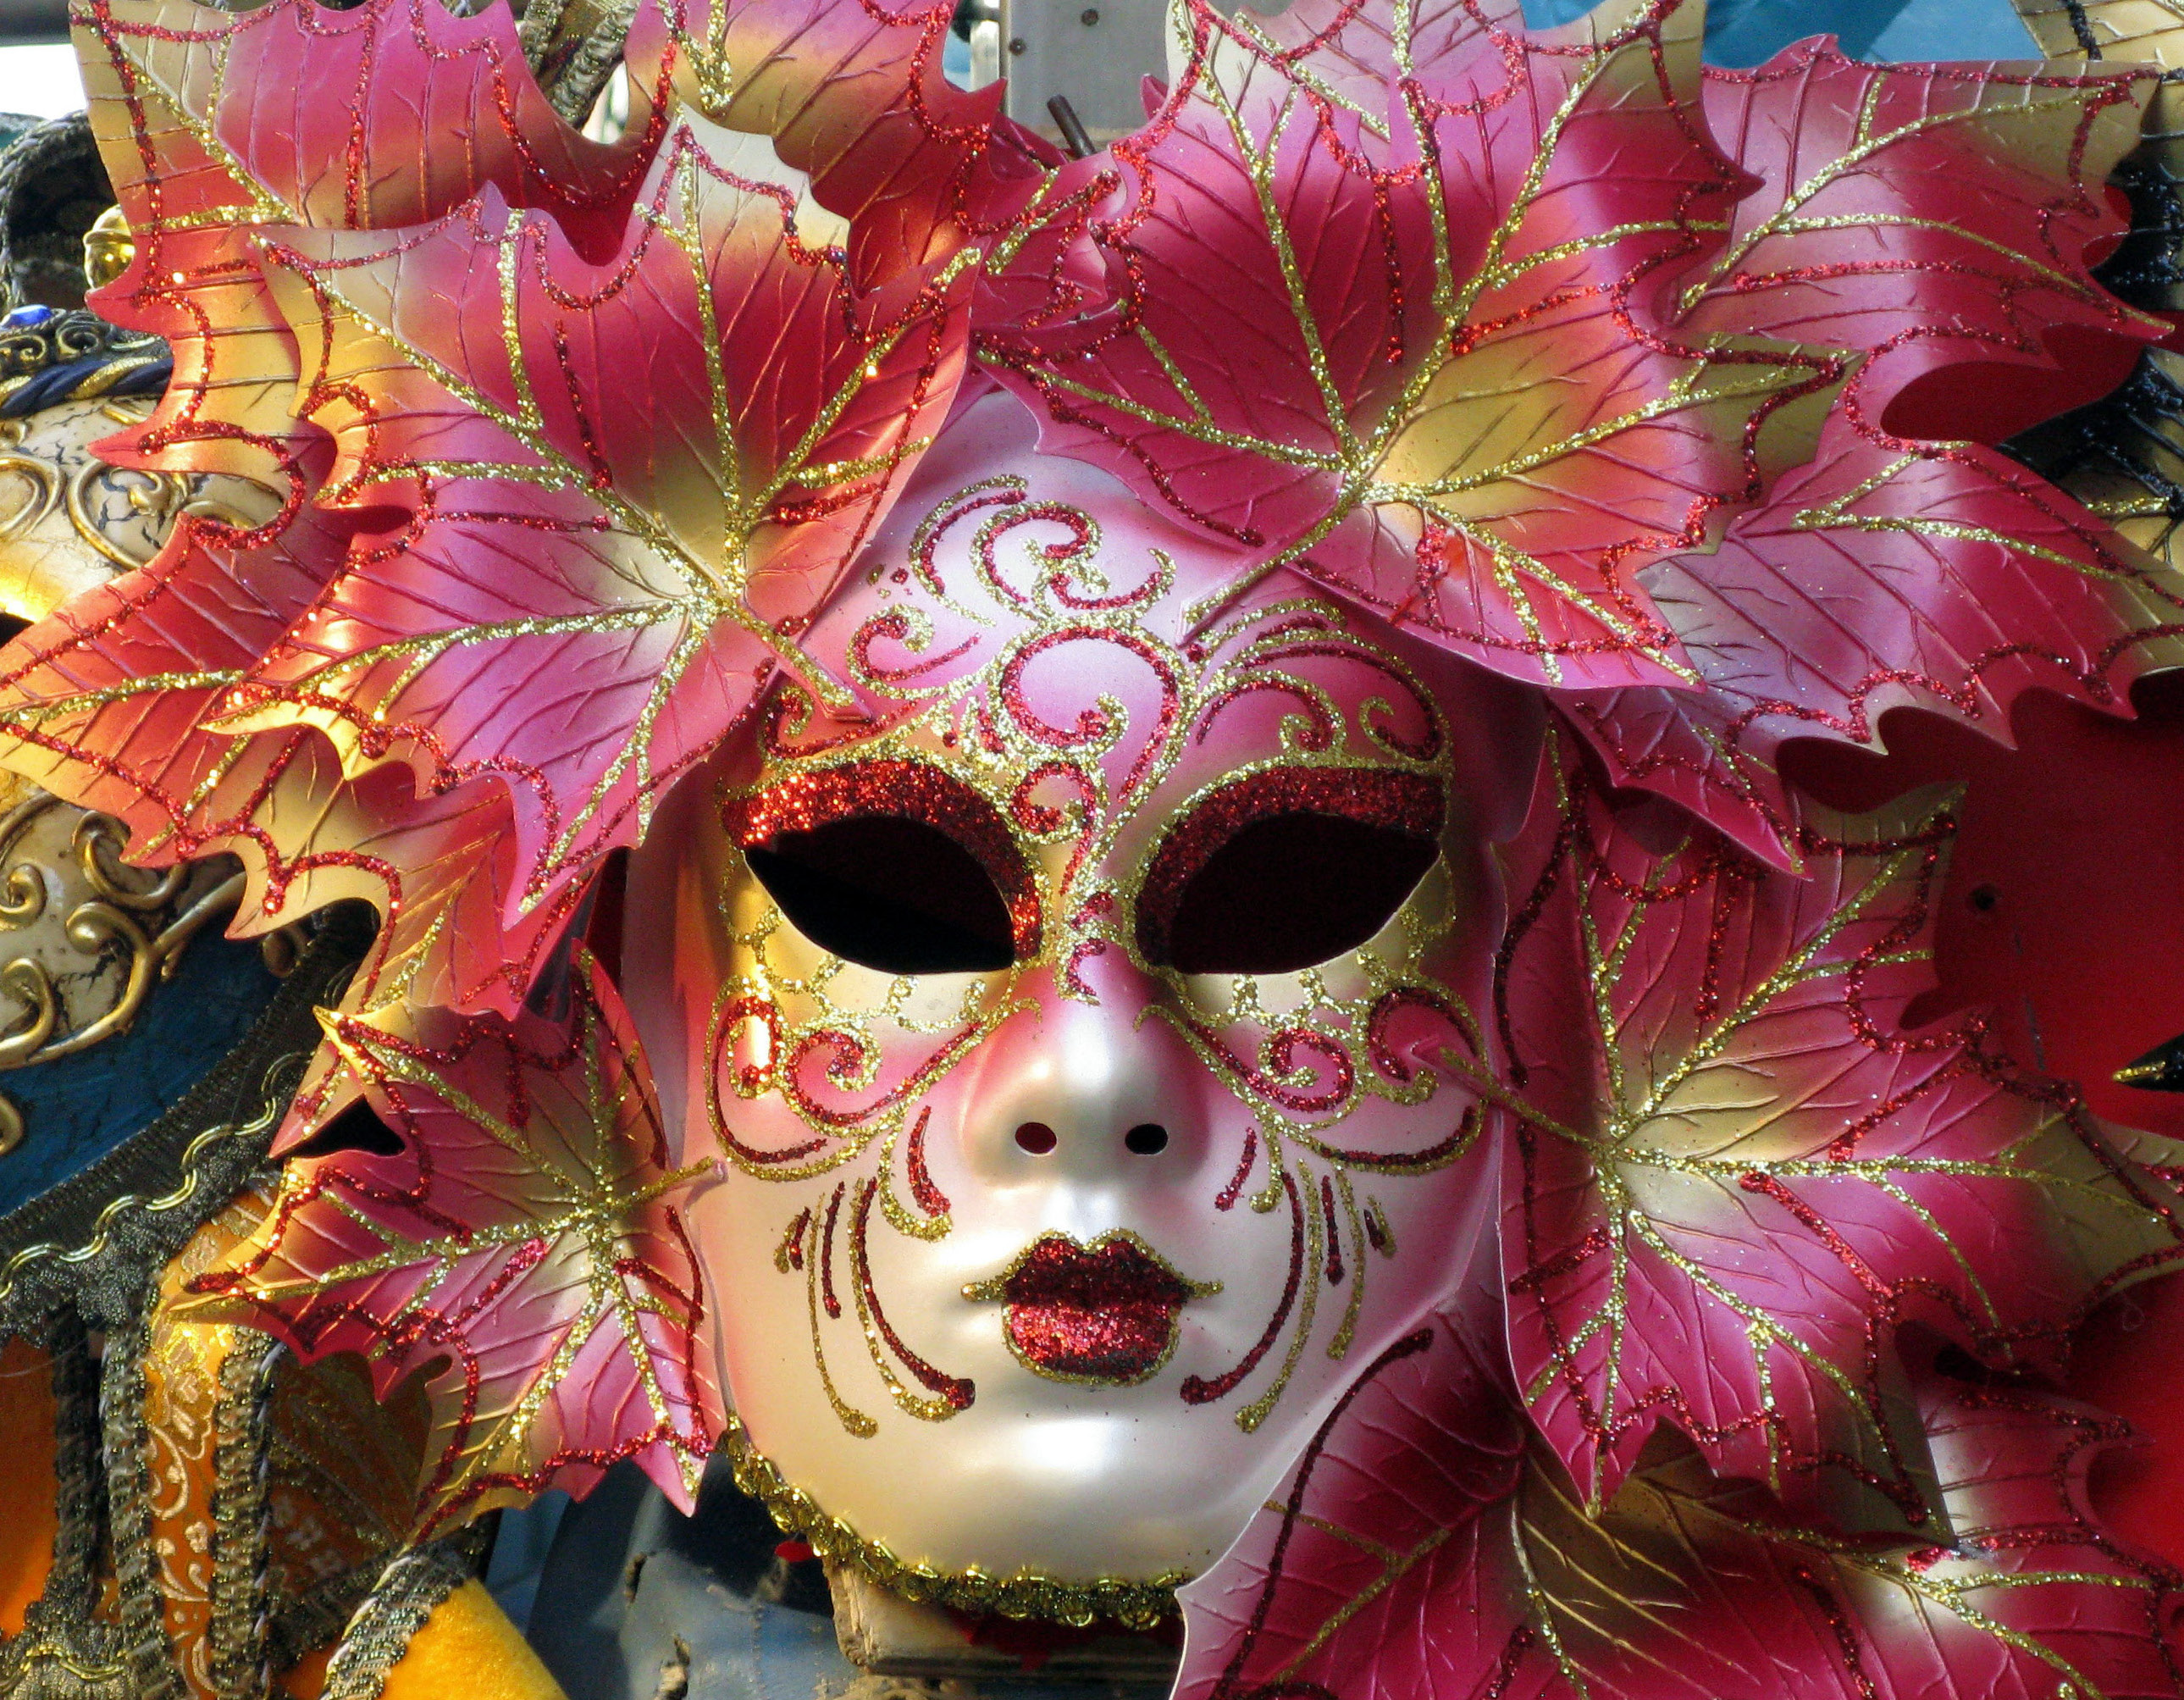 Venetian carnival masks | Brief thoughts & quotes